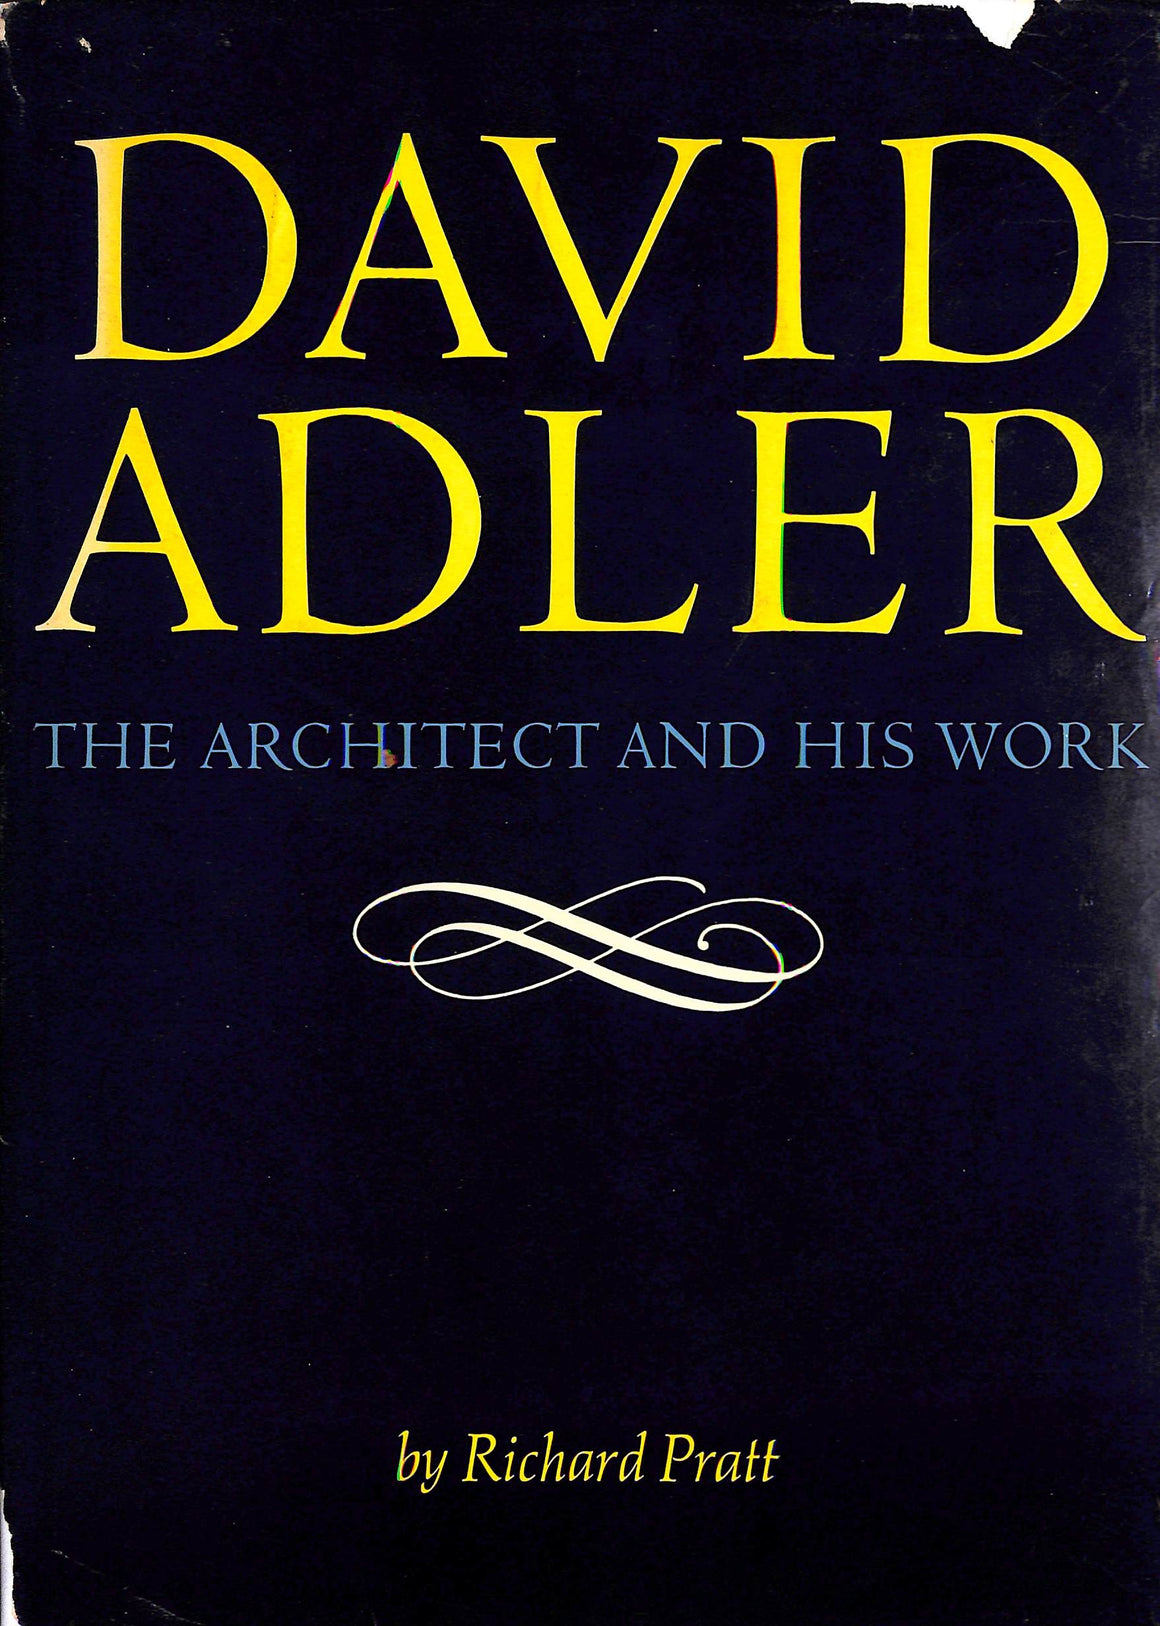 """David Adler: The Architect and His Work"" 1970 by Richard Pratt"